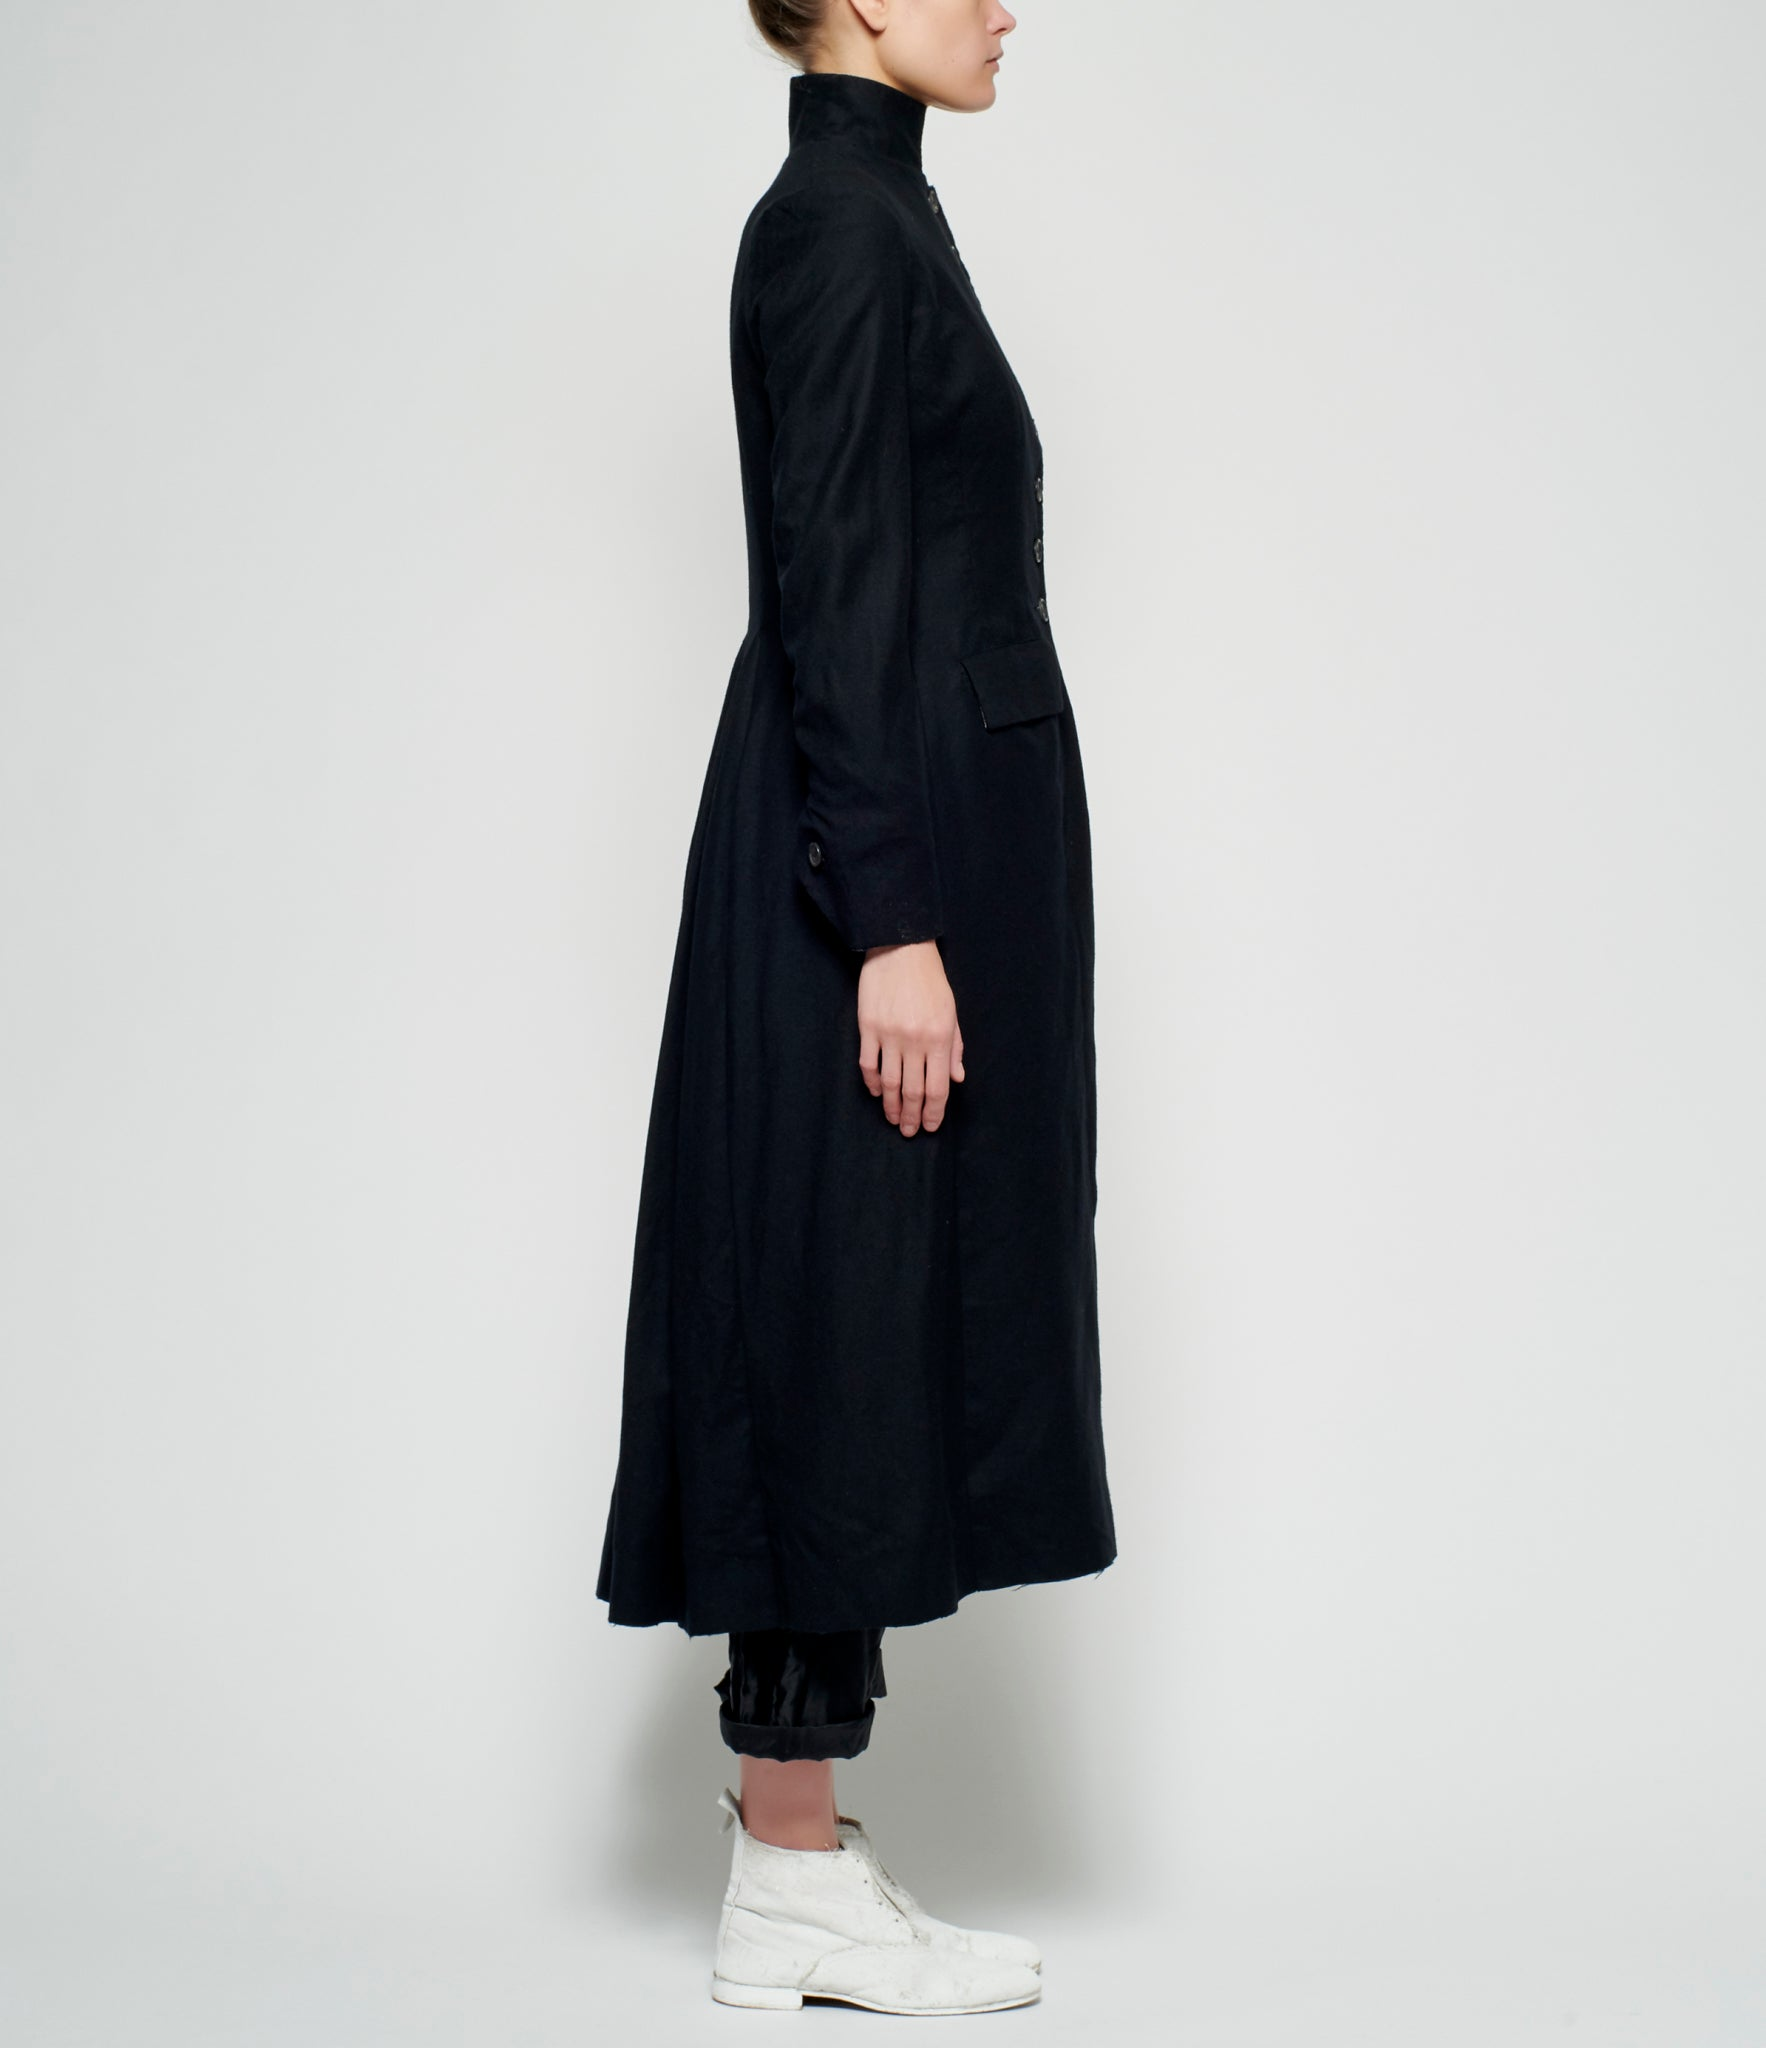 Elena Dawson 8 Button Wool Cashmere Coat